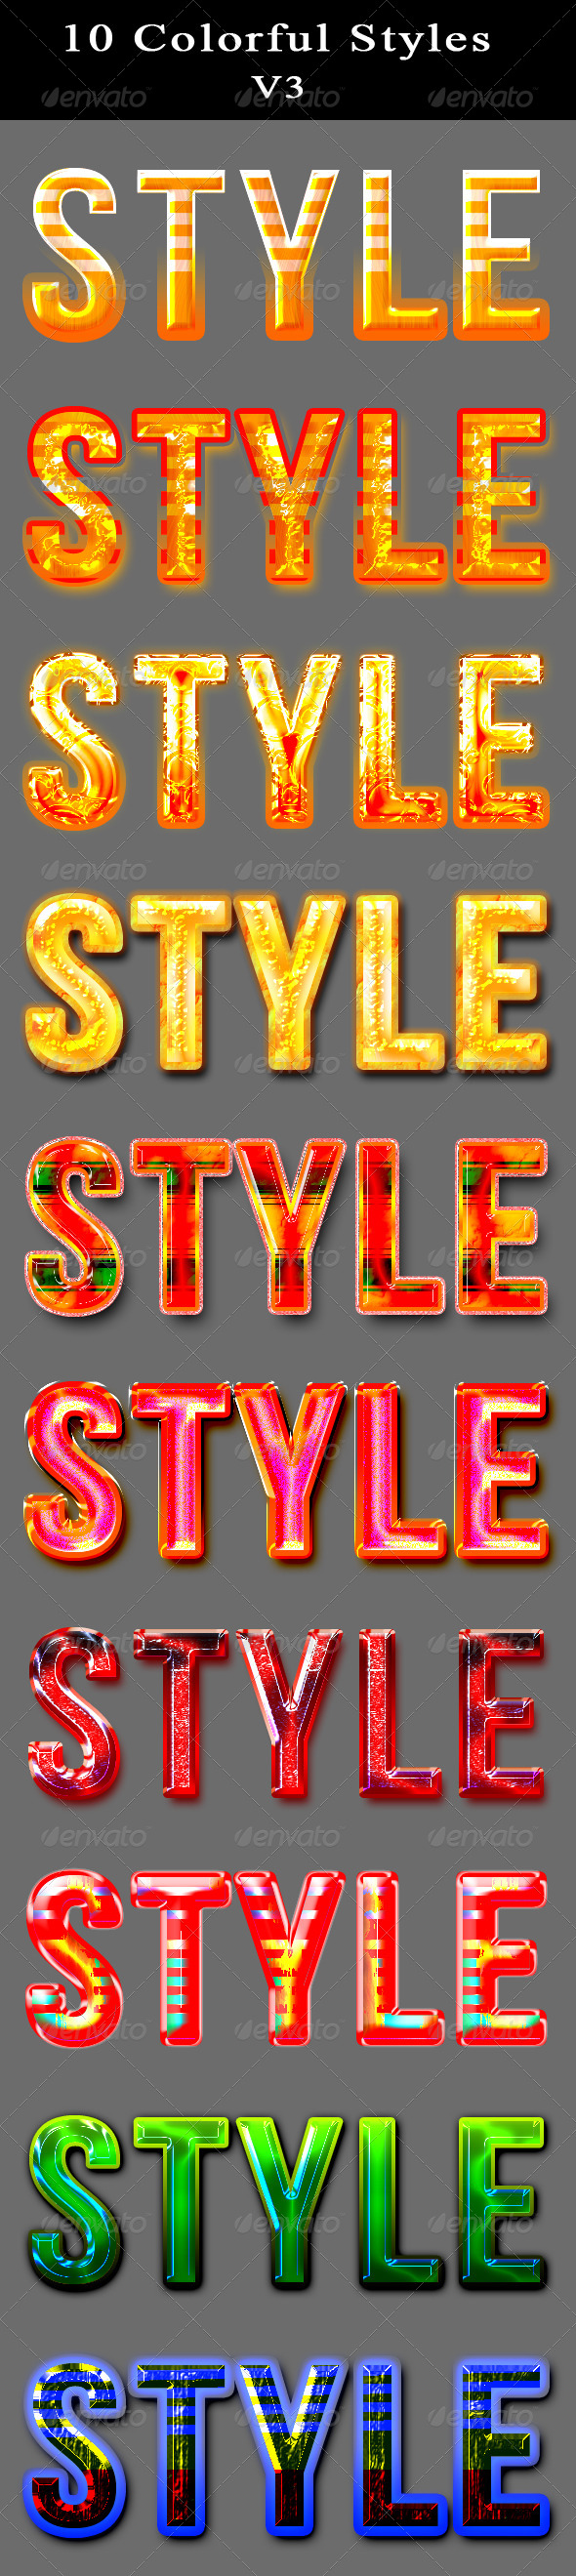 GraphicRiver 10 Colorful Layer Styles 5970181